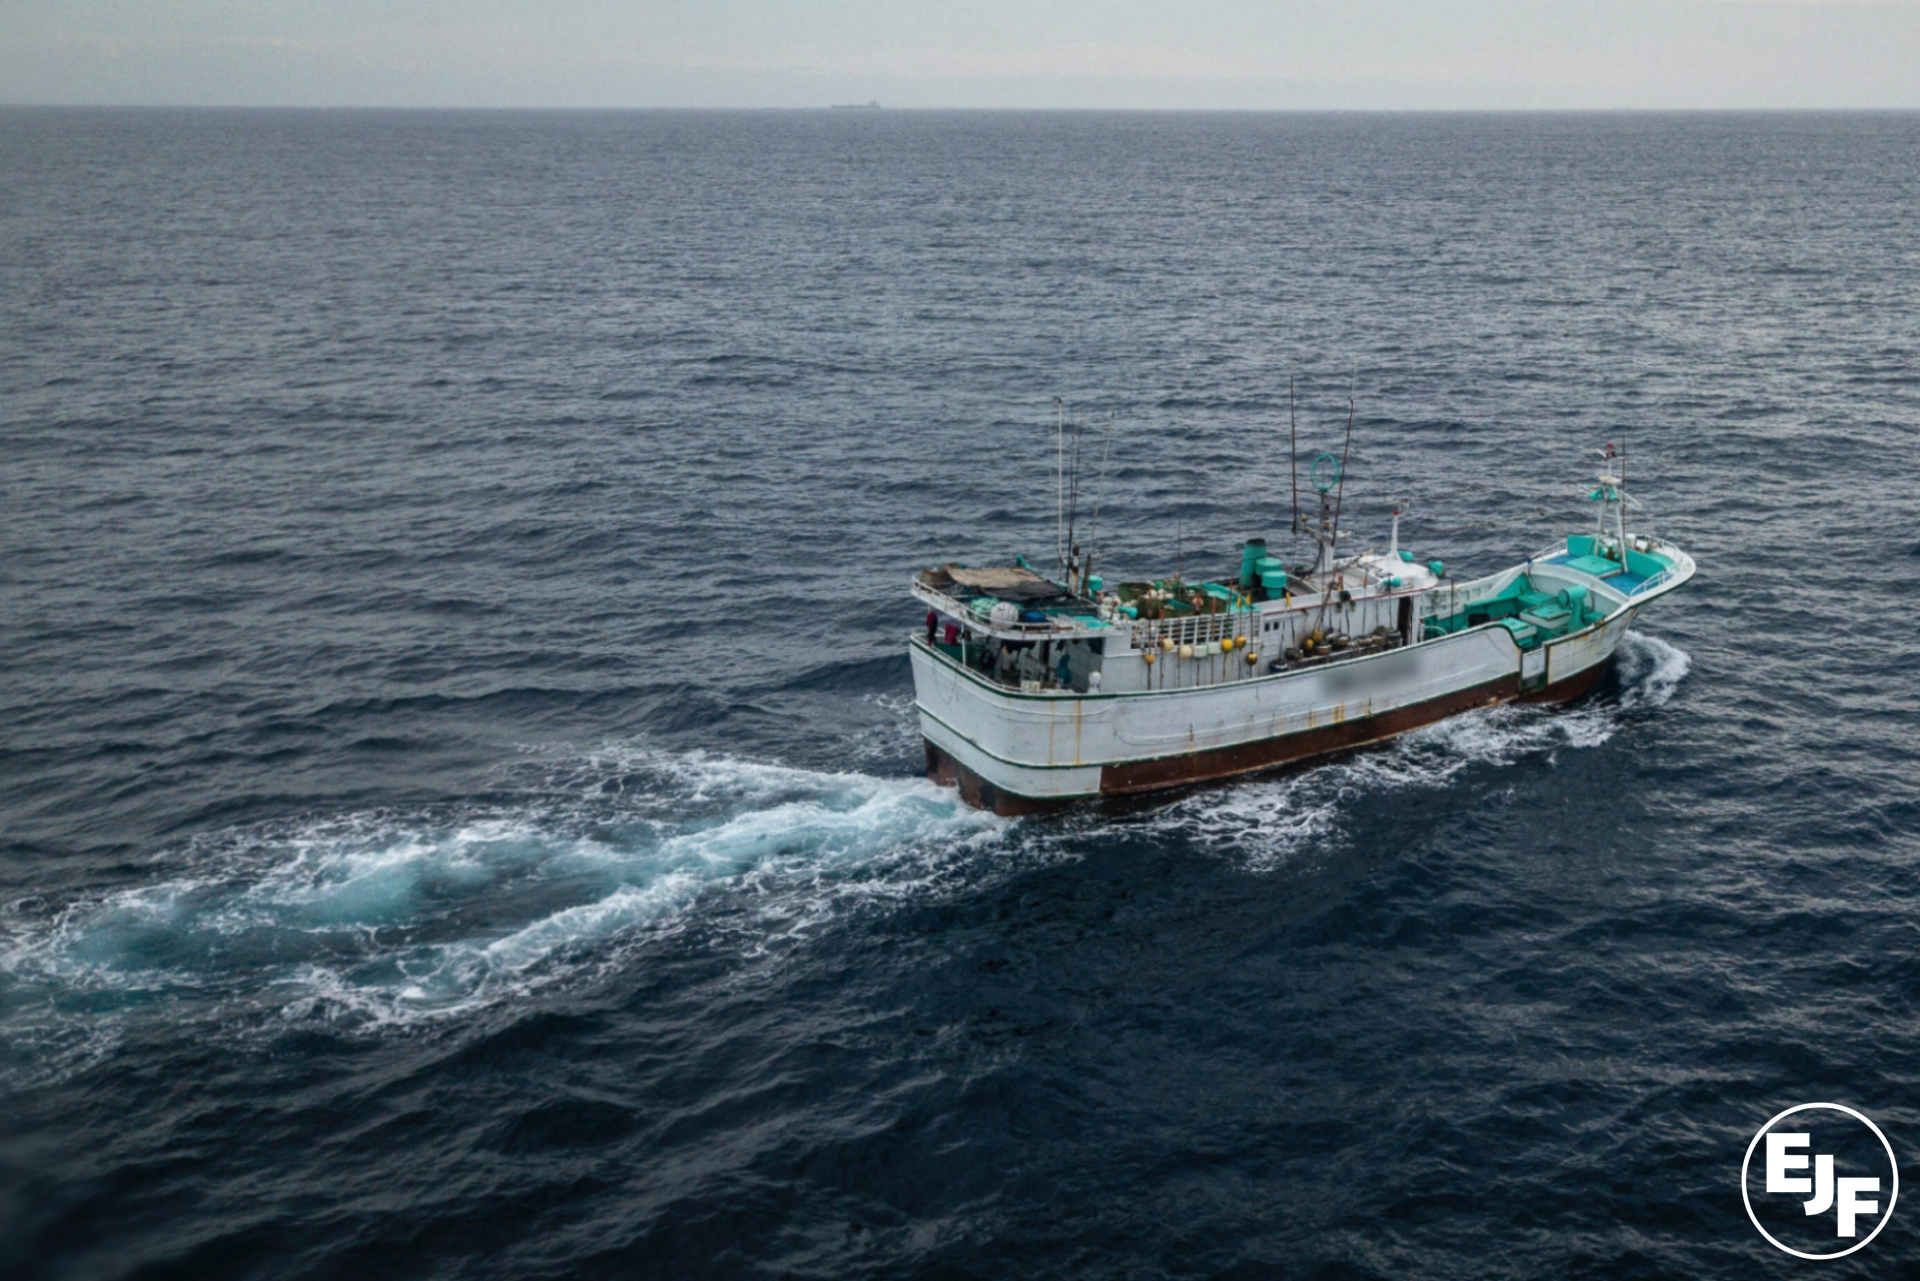 China and Taiwan named in US report against illegal fishing – greater transparency needed